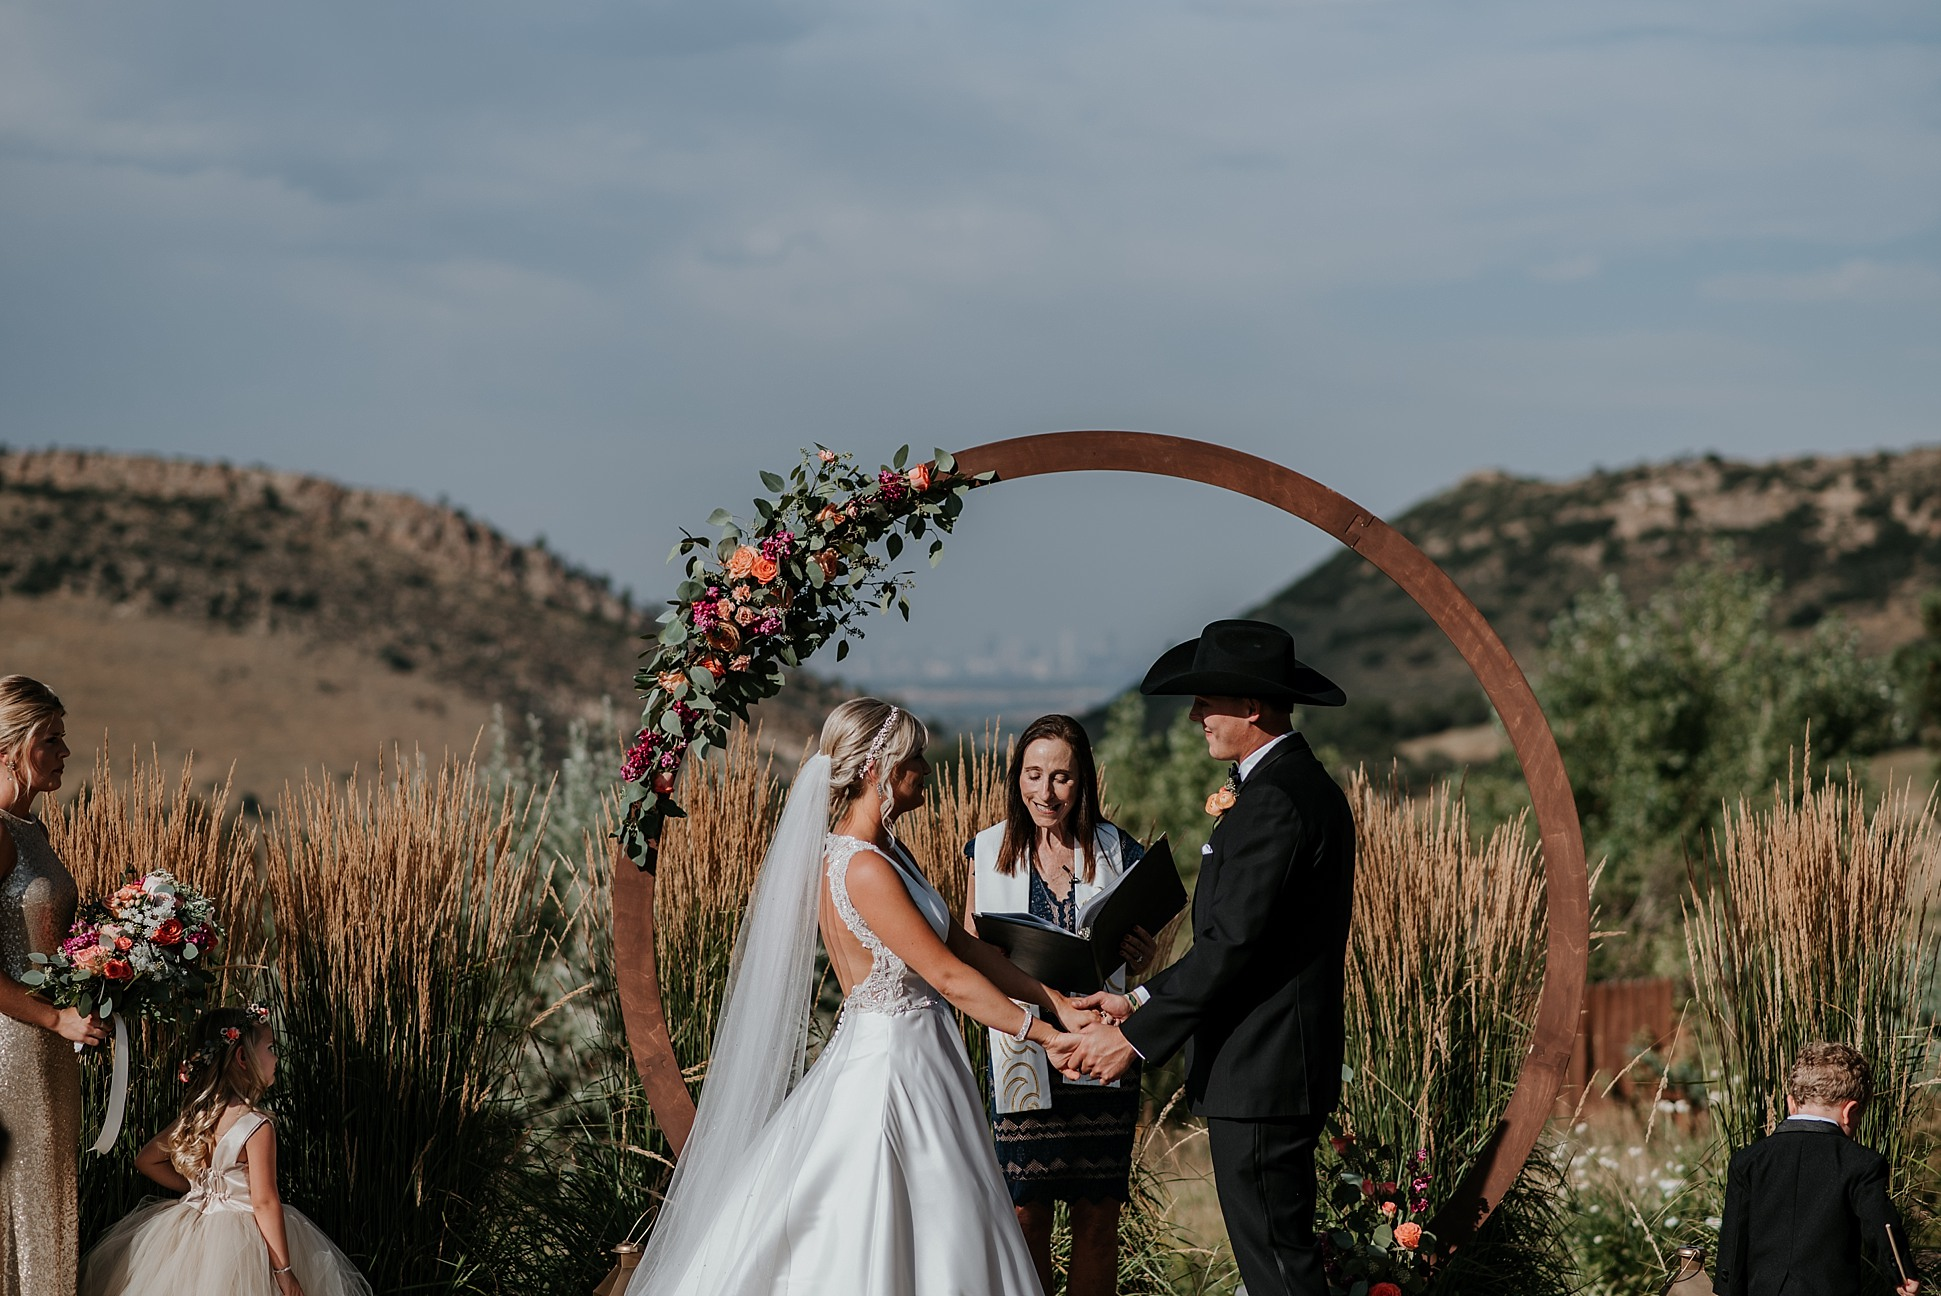 The manor house wedding, the manor house wedding photographer, denver wedding photographer, colorado elopement photographer, colorado wedding photographer, denver wedding videographer, colorado wedding videographer, denver wedding photographer and videographer, floral arch ceremony